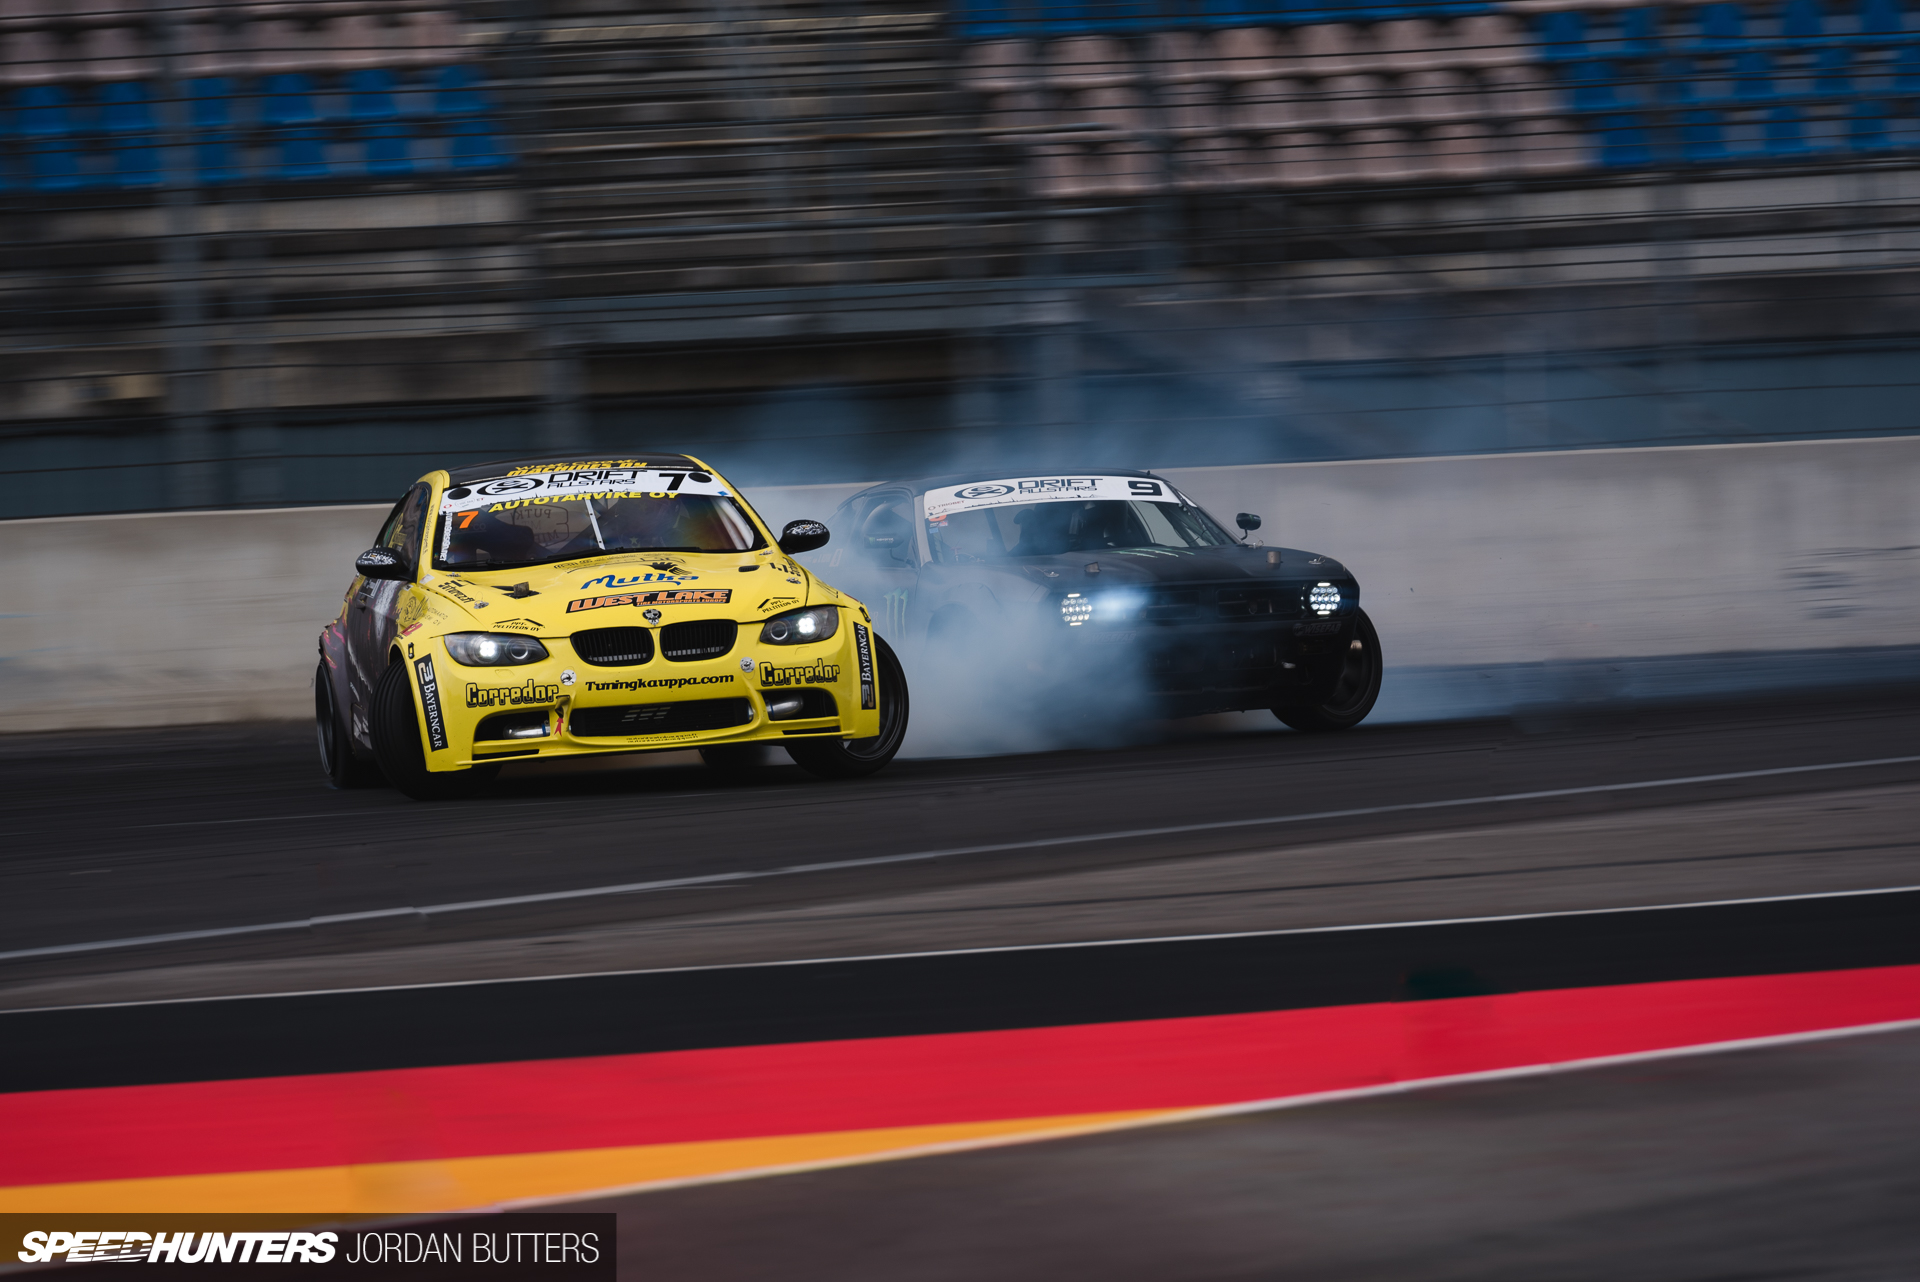 Shooting Drift: A Speedhunter's Approach